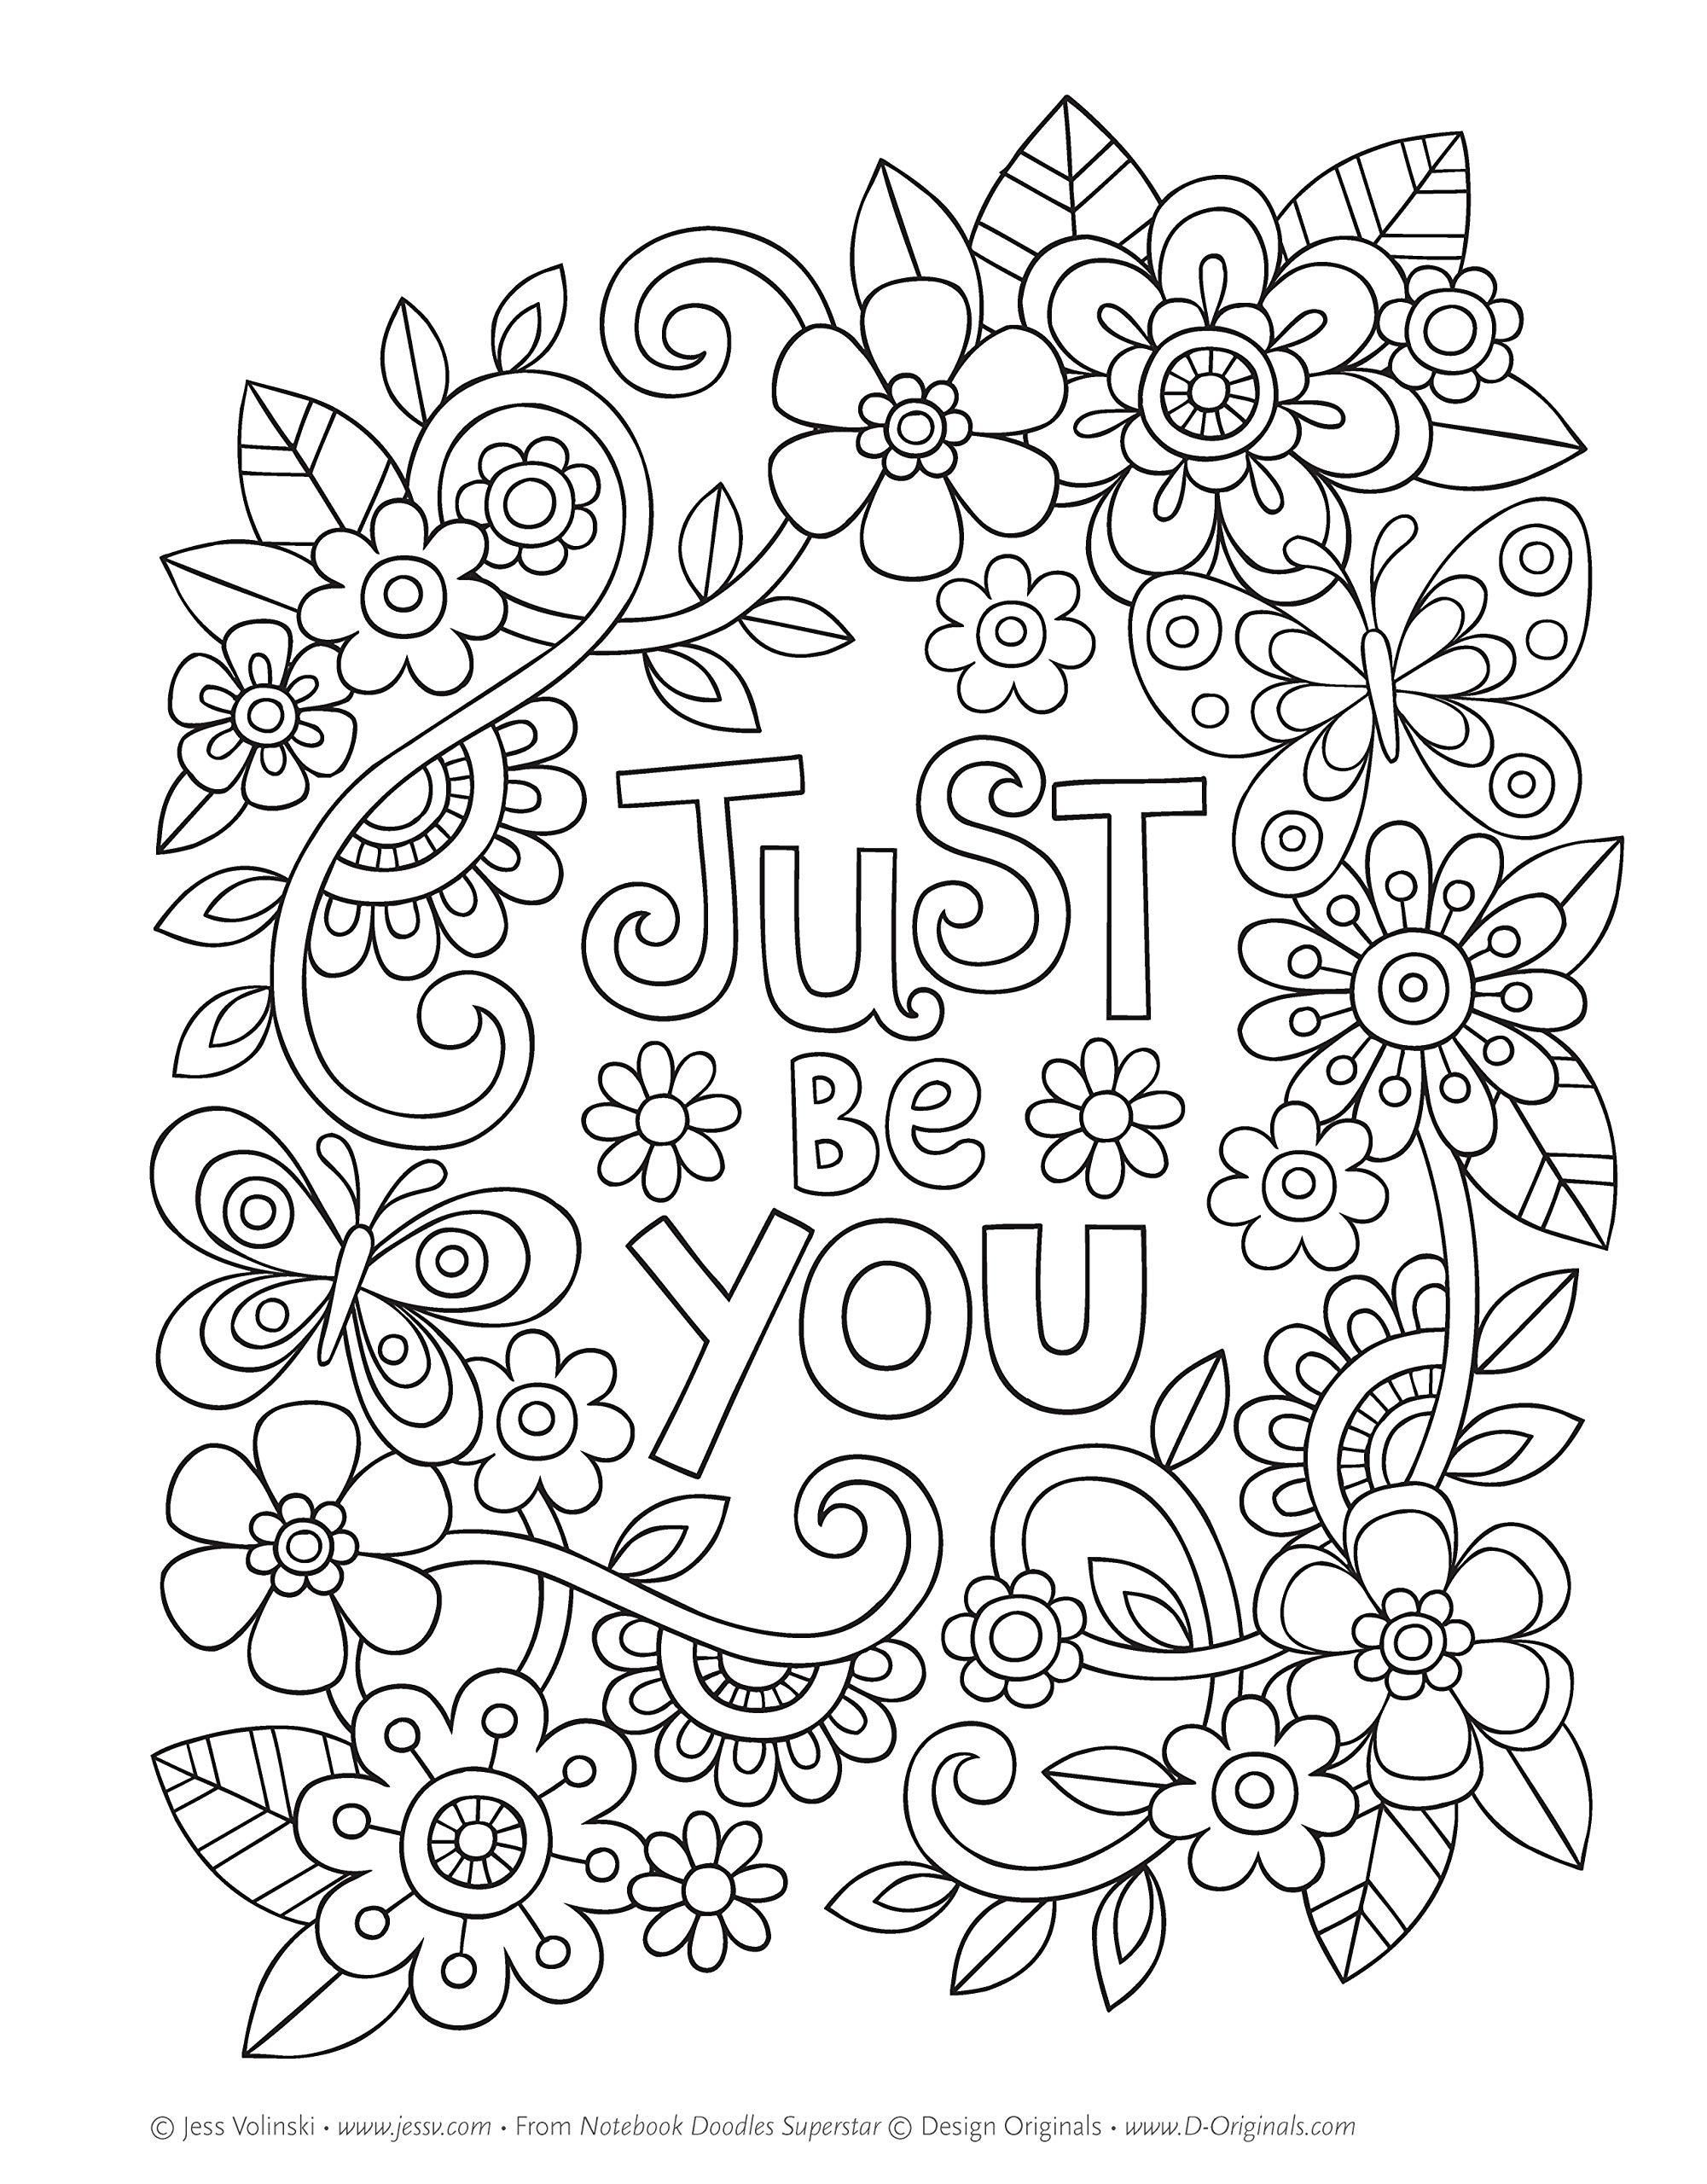 Superstar Coloring Book In 2021 Coloring Pages Inspirational Quote Coloring Pages Mandala Coloring Pages